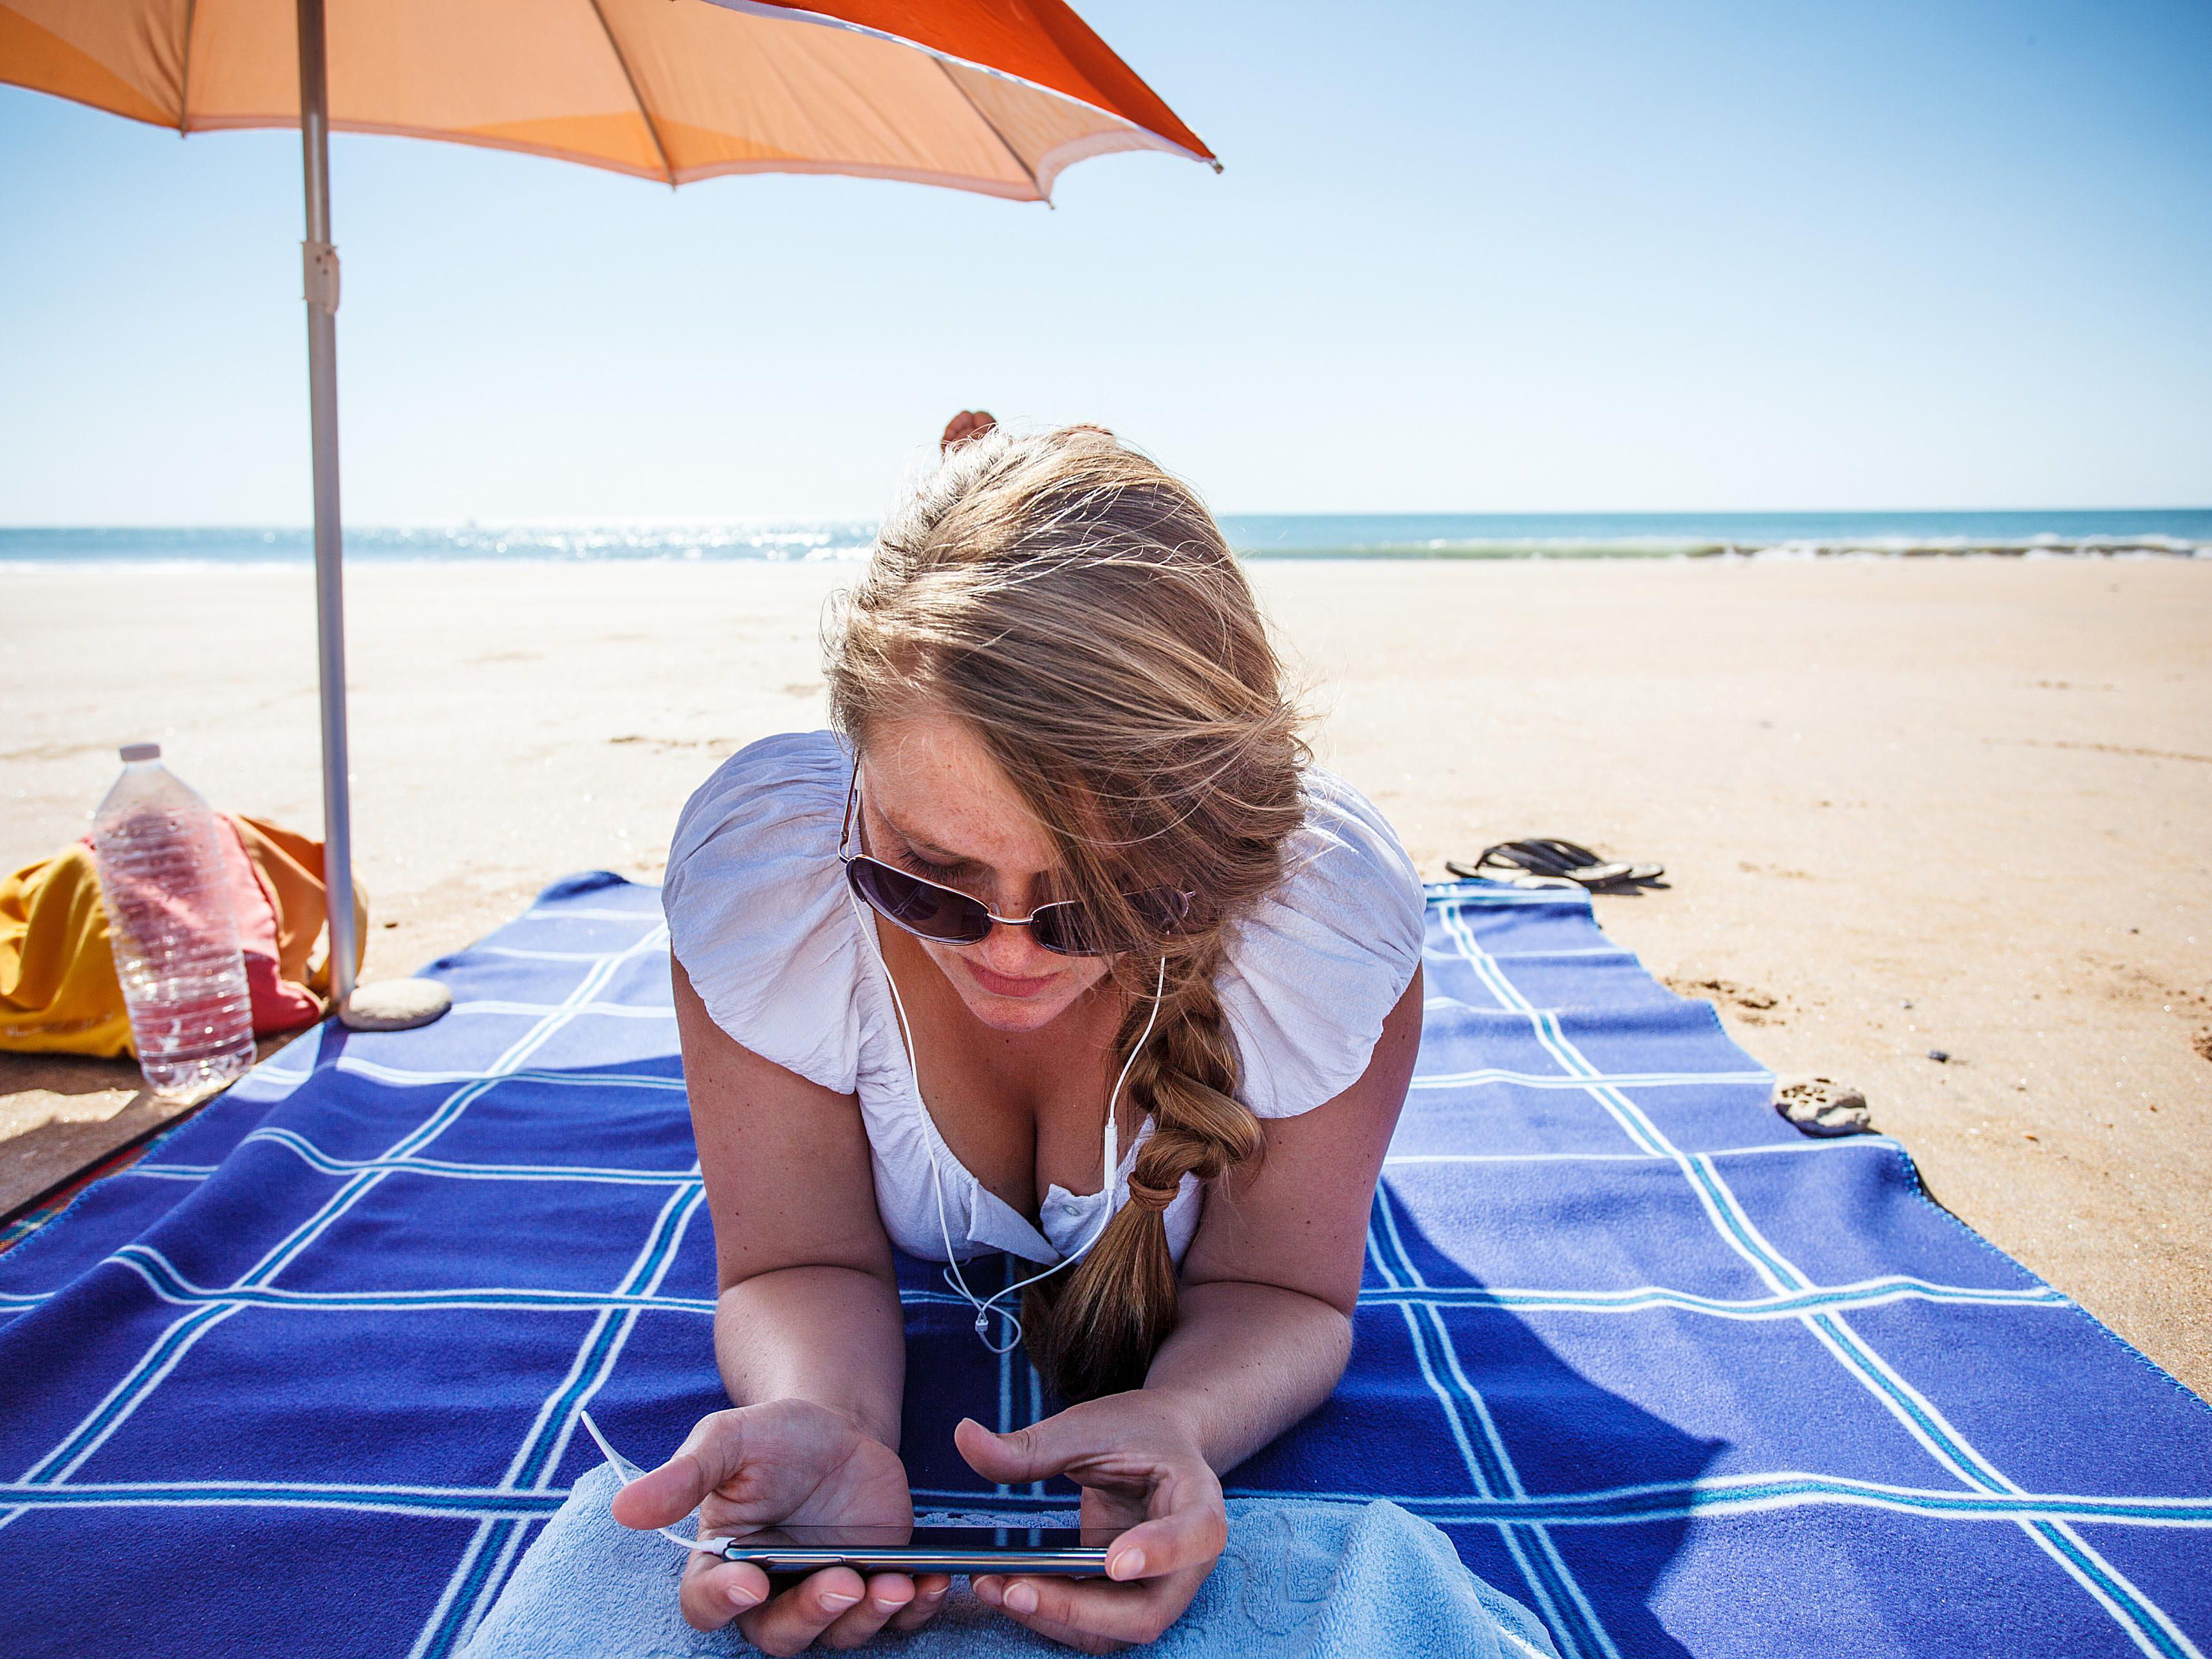 Heading to the Beach? Download These 6 Handy Apps First